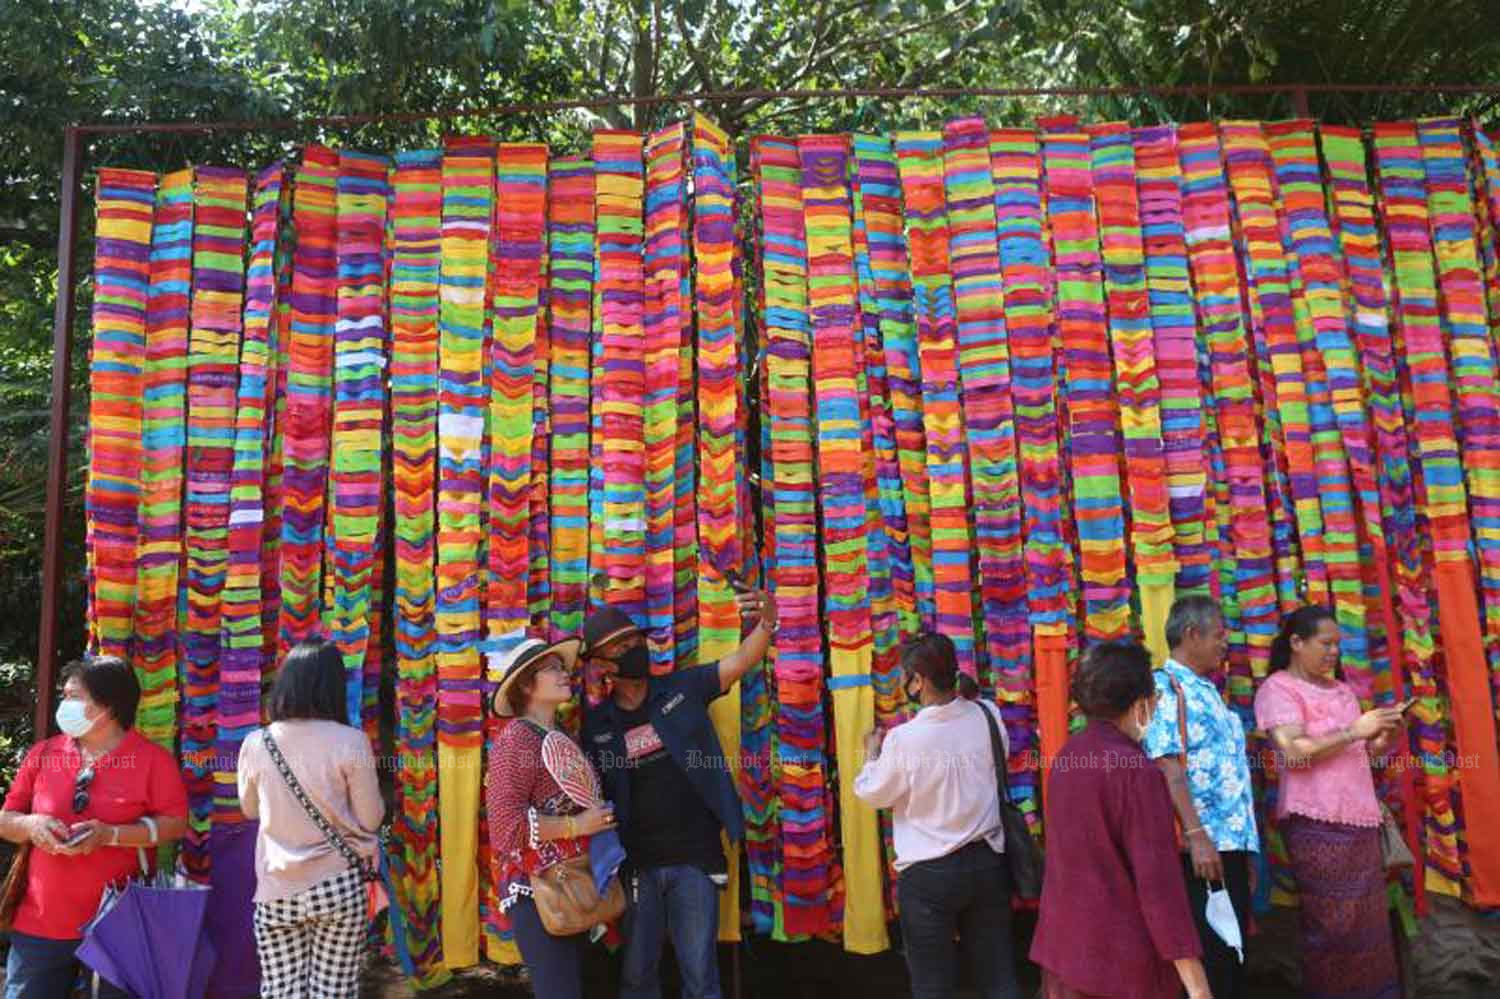 Tourists use brightly-coloured cloths in a merit-making rite at Wat Tham Pha Daeng, a temple on Phu Phan mountain range in Sakon Nakhon's Muang district, during the long weekend. The temple is well-known for its sandstone reliefs. PATTARAPONG CHATPATTARASILL